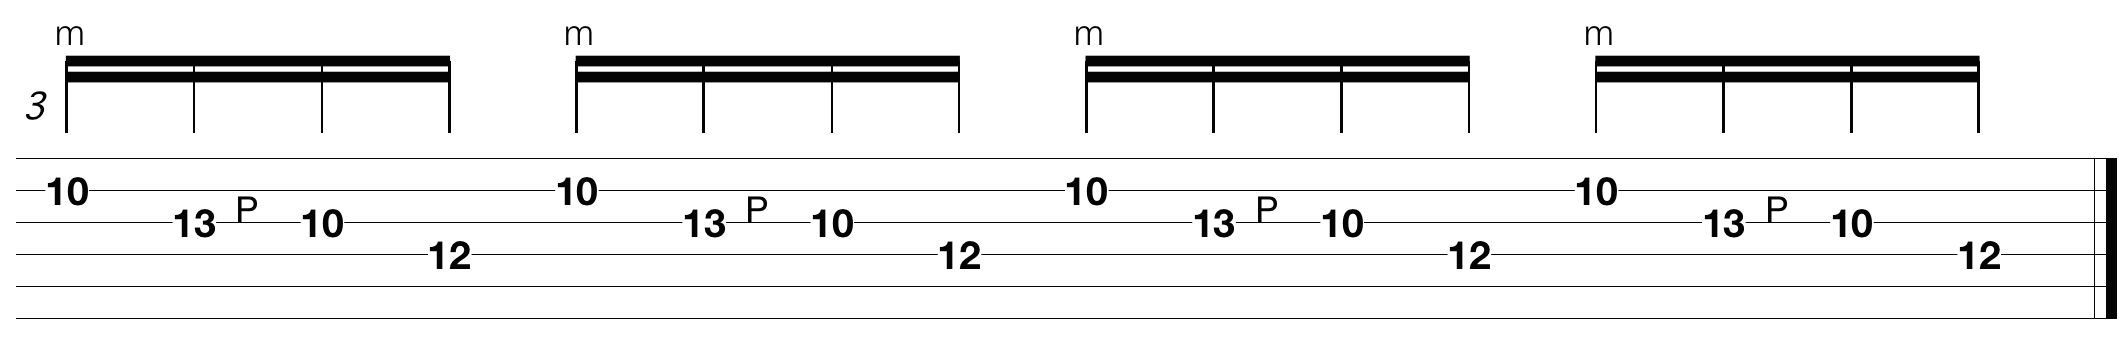 guitar-solo-tips_4.png